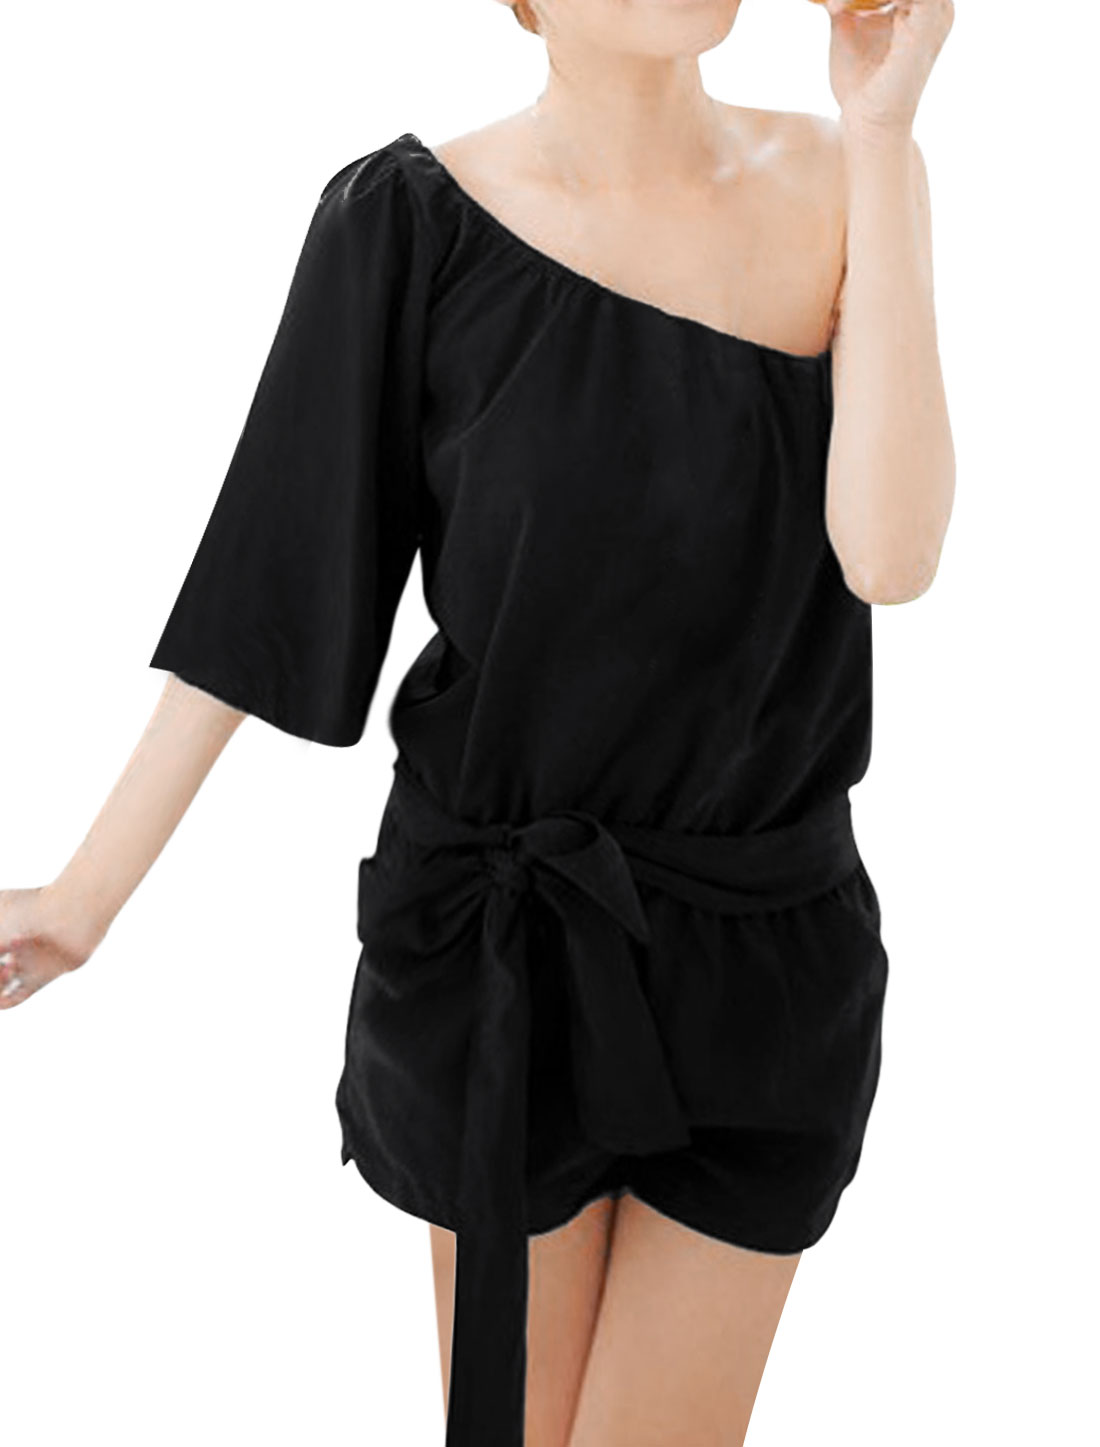 Ladies Black One Shoulder Stylish Shirred Casual Summer Romper XL